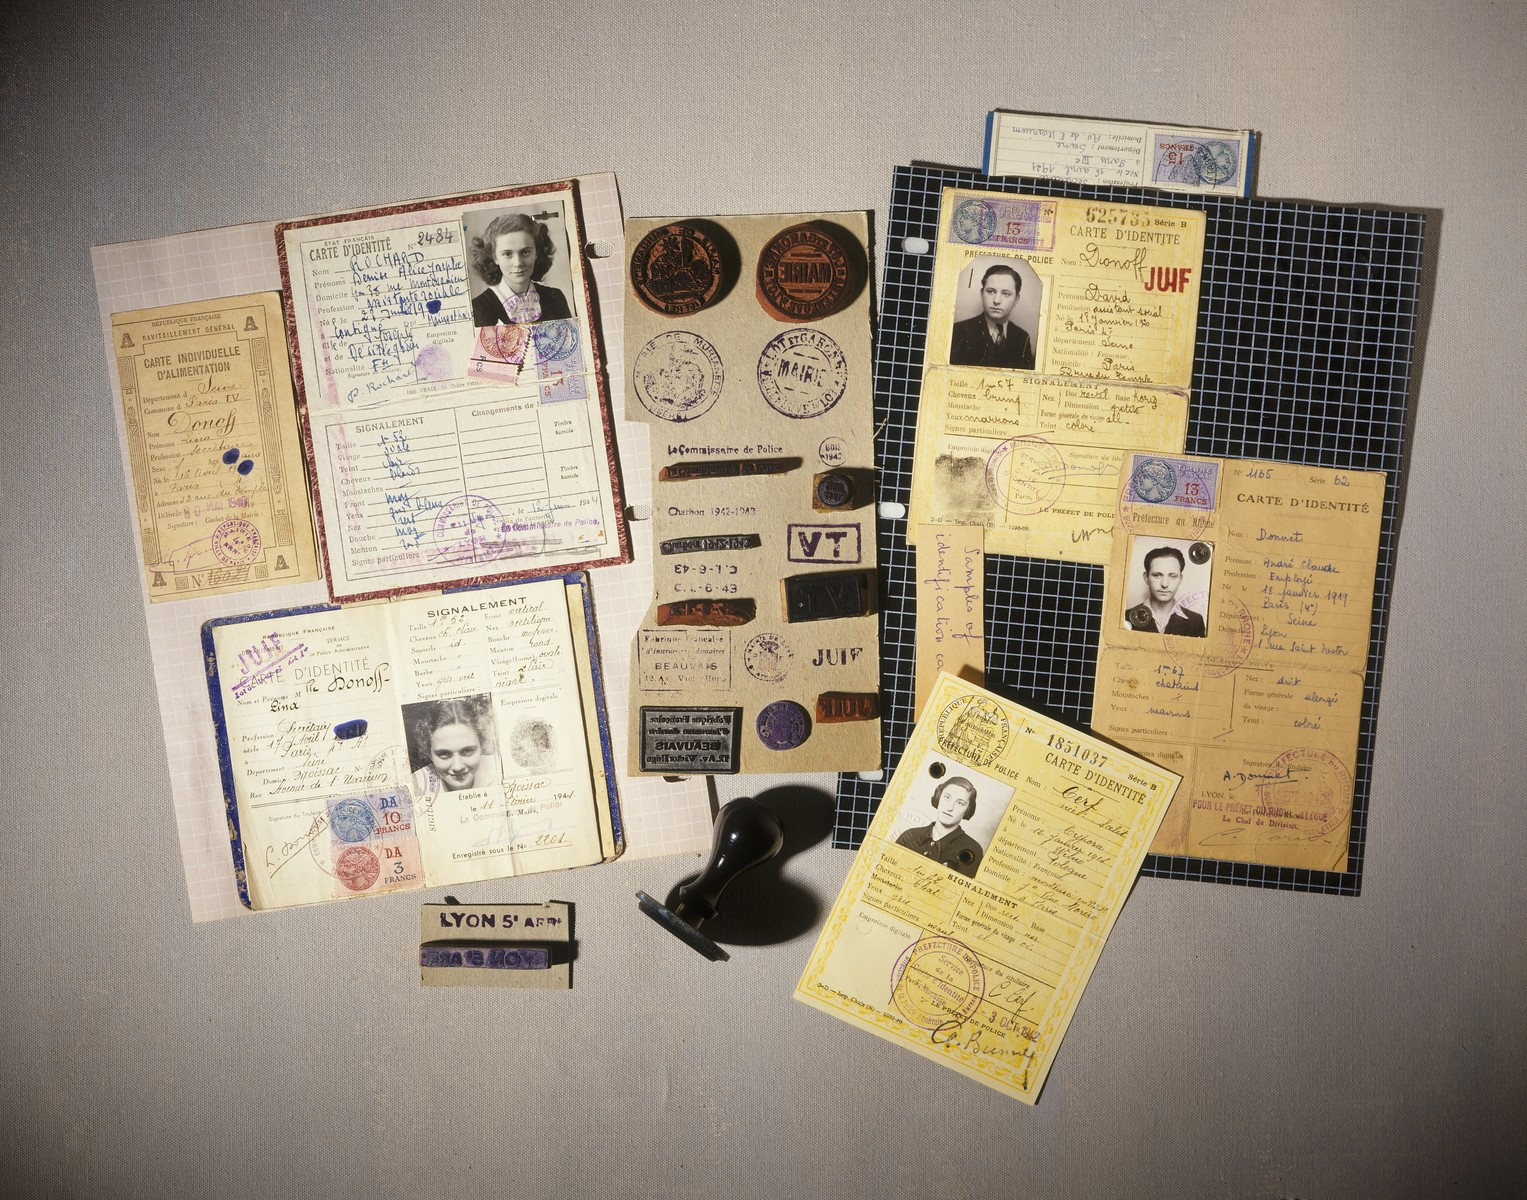 Collage of forged French identification papers and the rubber stamps used to produced them, displayed on the second floor of the permanent exhibition at the U.S. Holocaust Memorial Museum.  Among the collection are:  1. (Frank, 1988.077): Forged identification papers and rubber stamps.  2. (Cerf, 1991.070): Forged identification papers and rubber stamps.